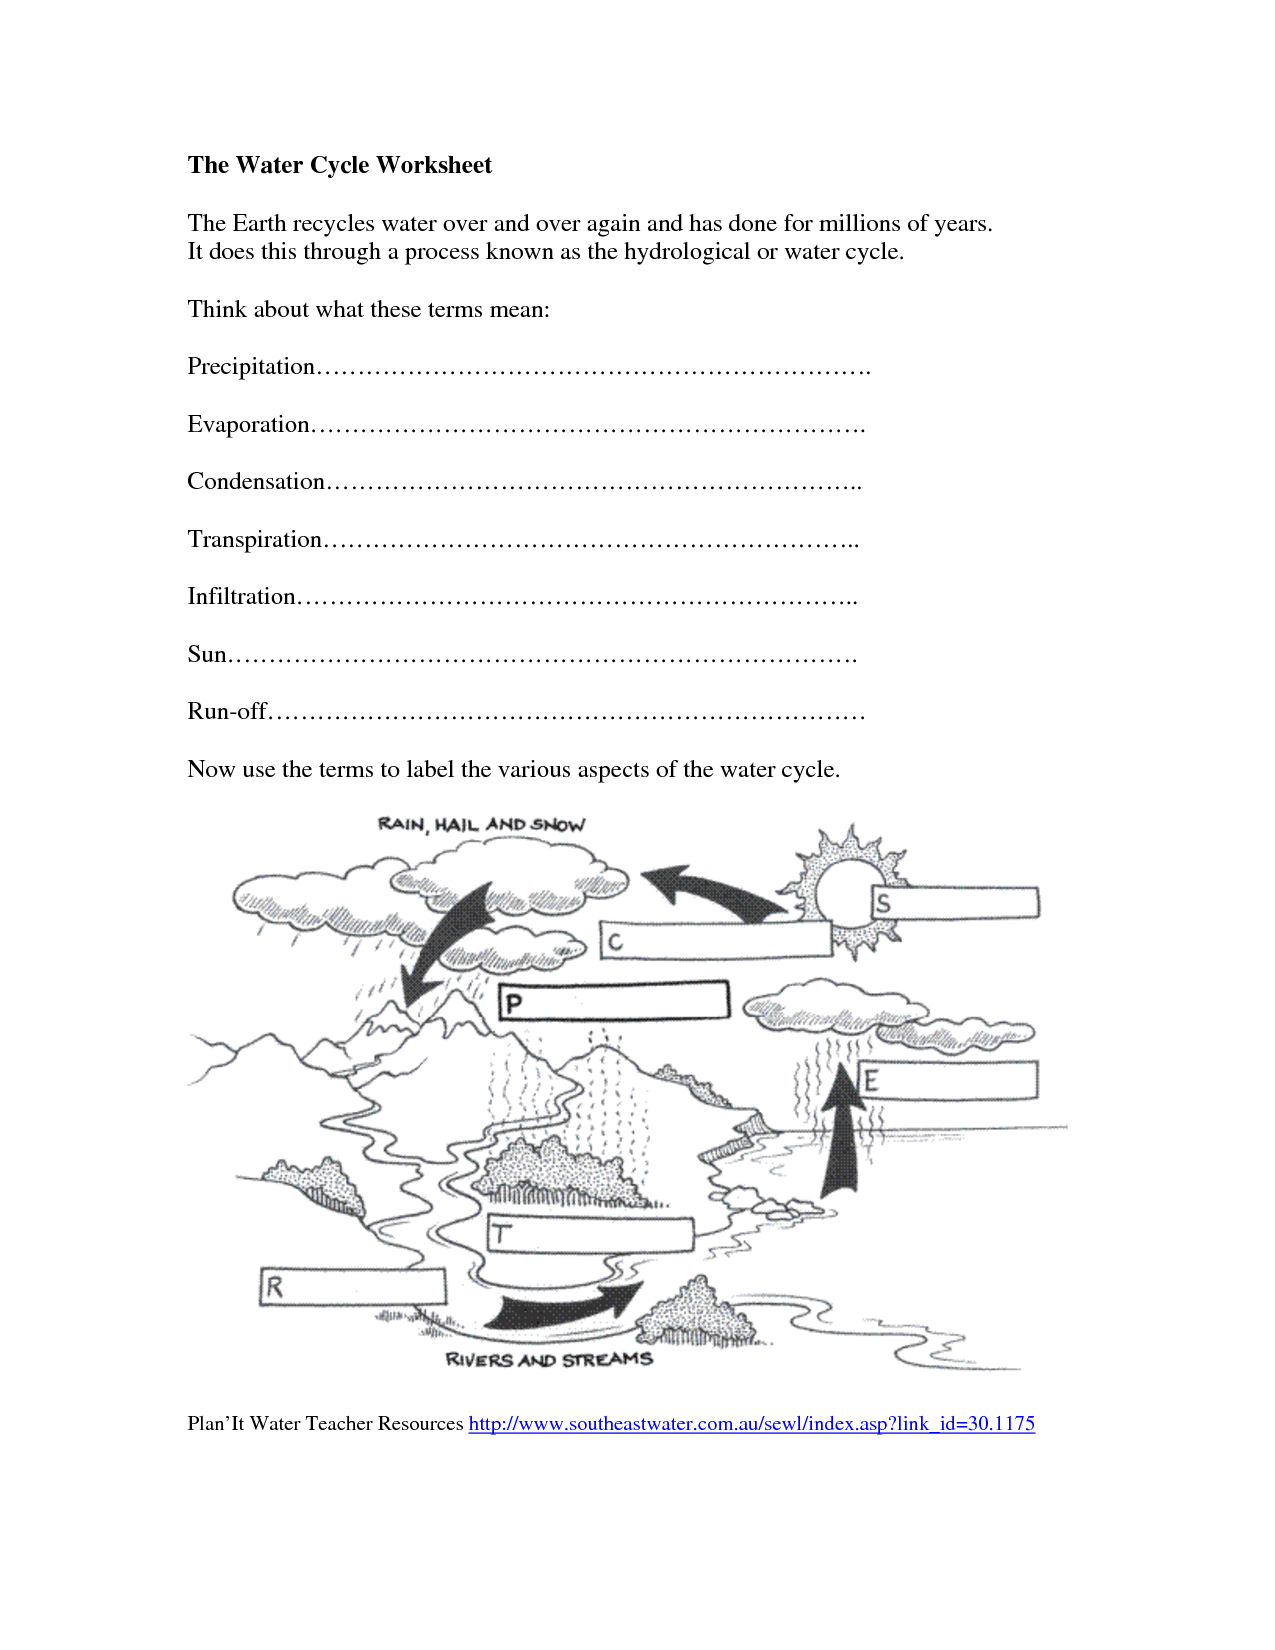 31 The Water Cycle Worksheet